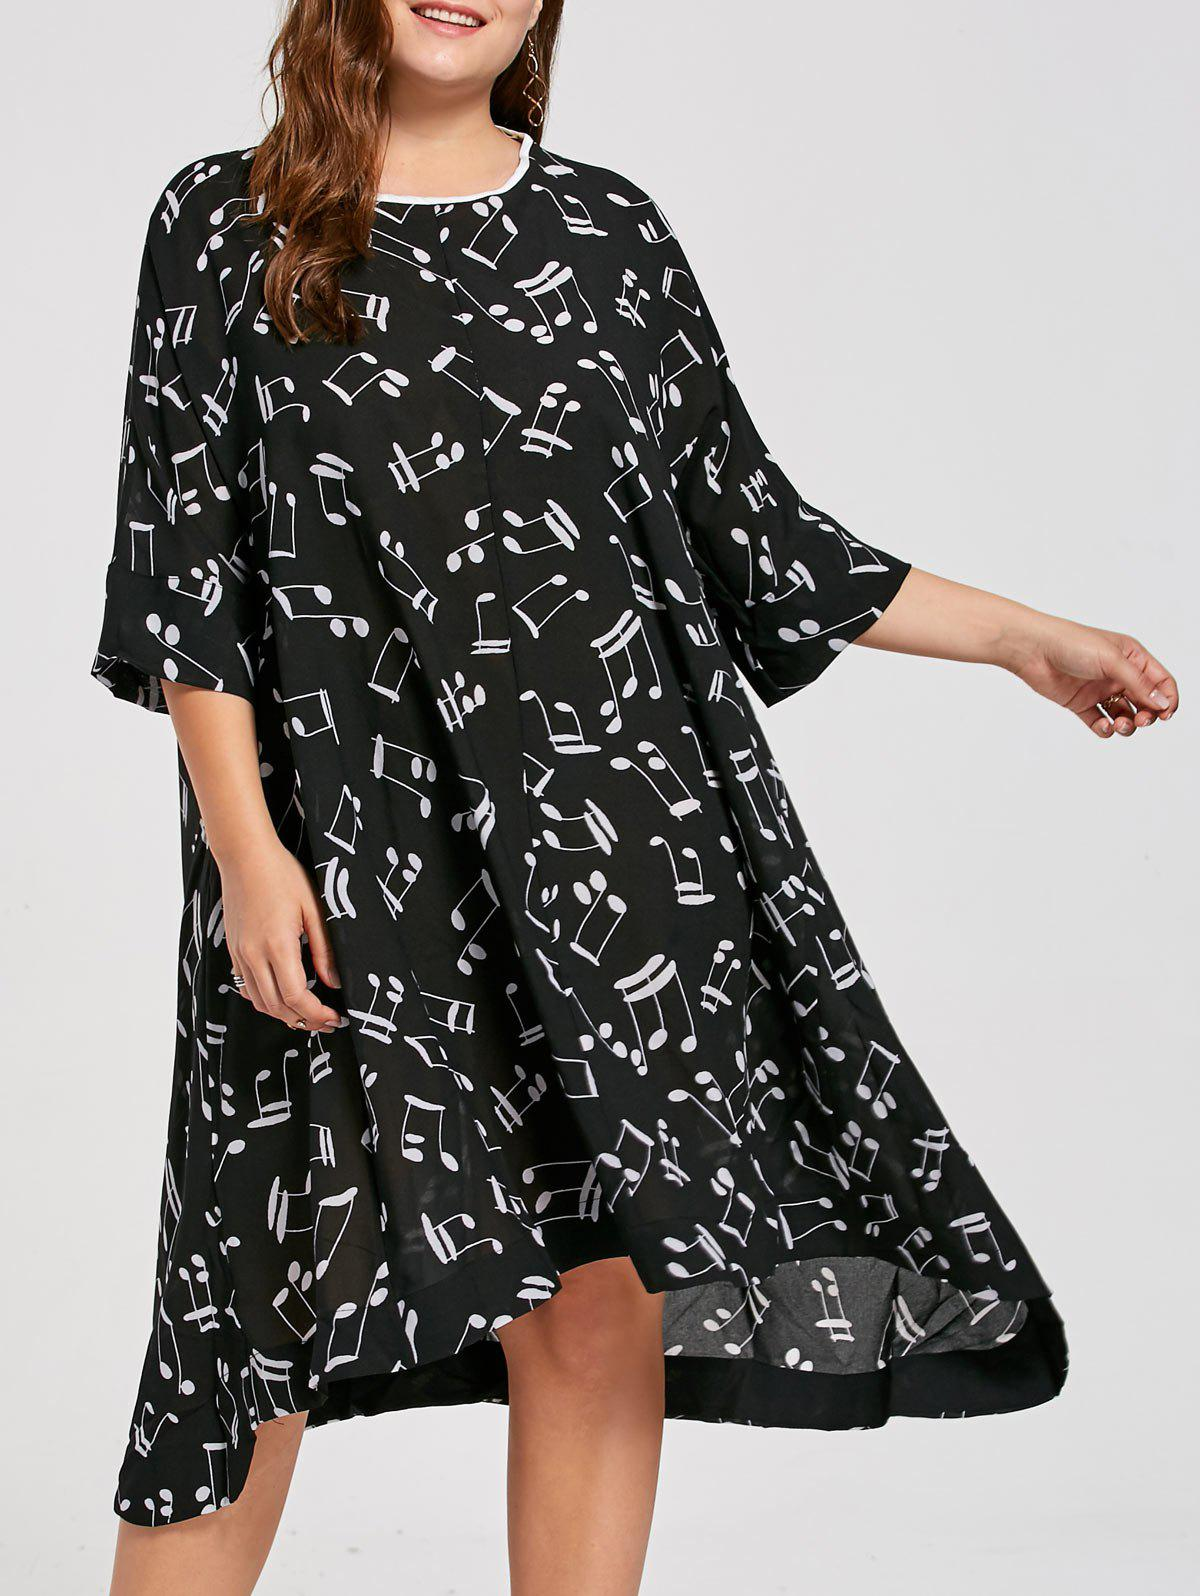 Plus Size Music Note Print Midi Smock DressWOMEN<br><br>Size: ONE SIZE; Color: BLACK; Style: Casual; Material: Cotton Blend,Polyester; Silhouette: Asymmetrical; Dresses Length: Mid-Calf; Neckline: Round Collar; Sleeve Type: Batwing Sleeve; Sleeve Length: 3/4 Length Sleeves; Pattern Type: Graphic,Print; With Belt: No; Season: Fall,Spring; Weight: 0.3400kg; Package Contents: 1 x Dress;